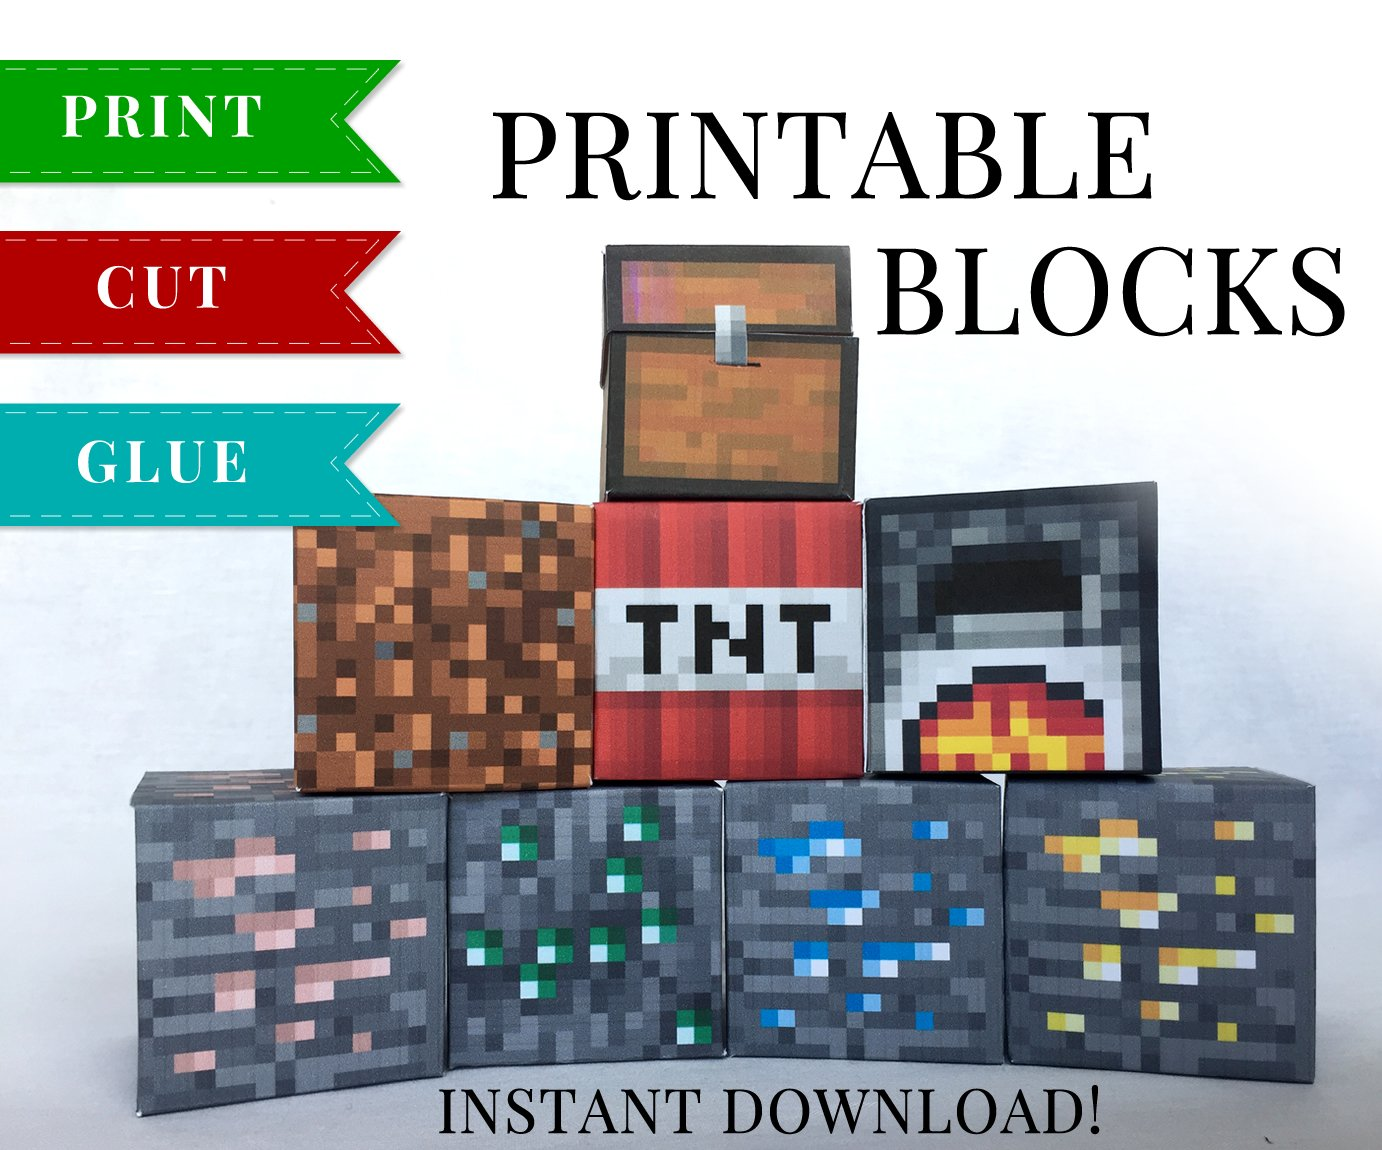 It's just a picture of Striking Minecraft Printable Blocks